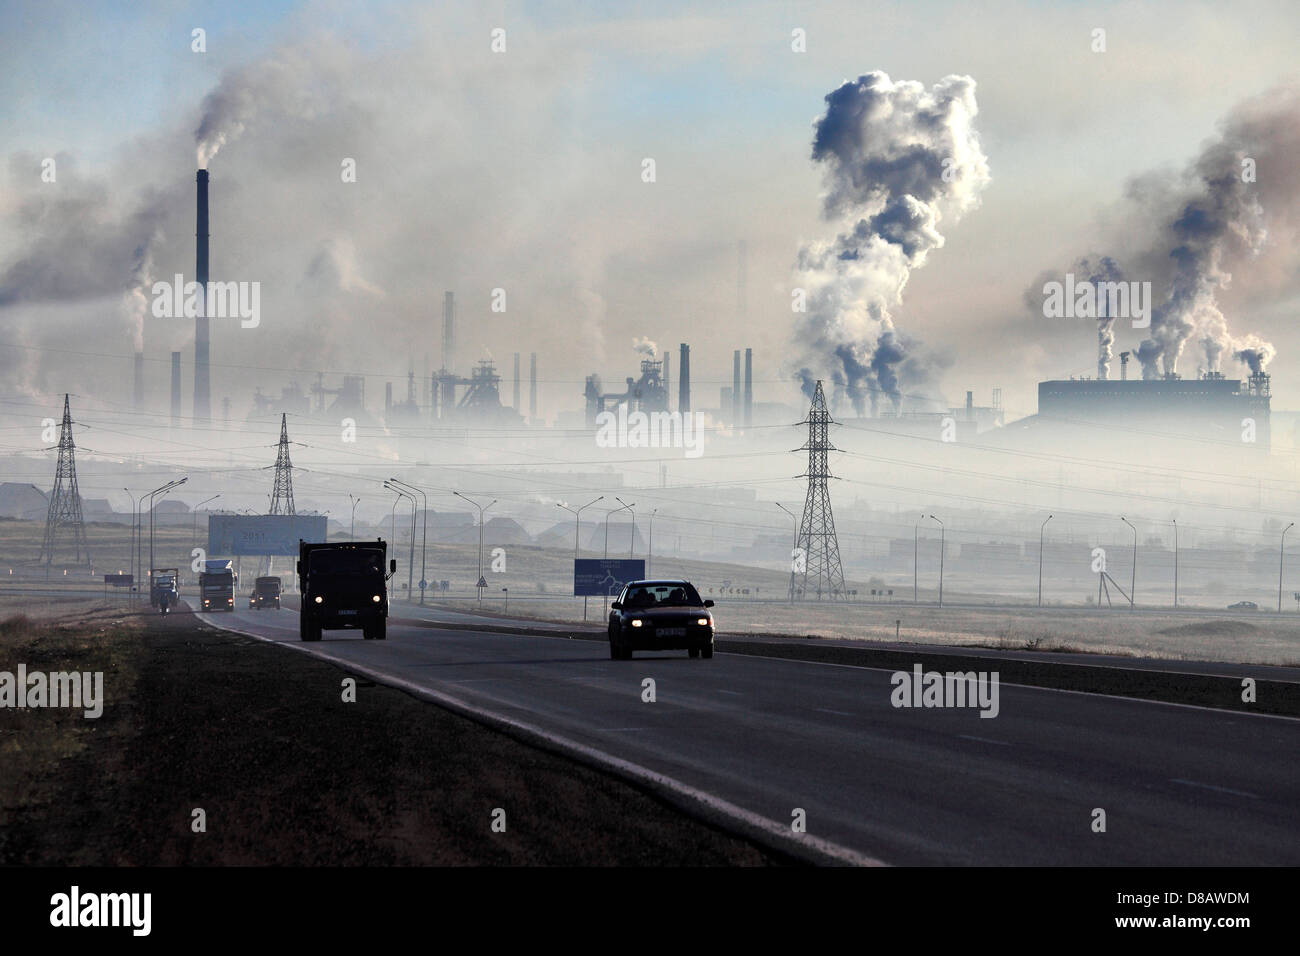 Karaganda - pollution de l'acier par-works ( Arselor Mittal Temirtau ) Photo Stock